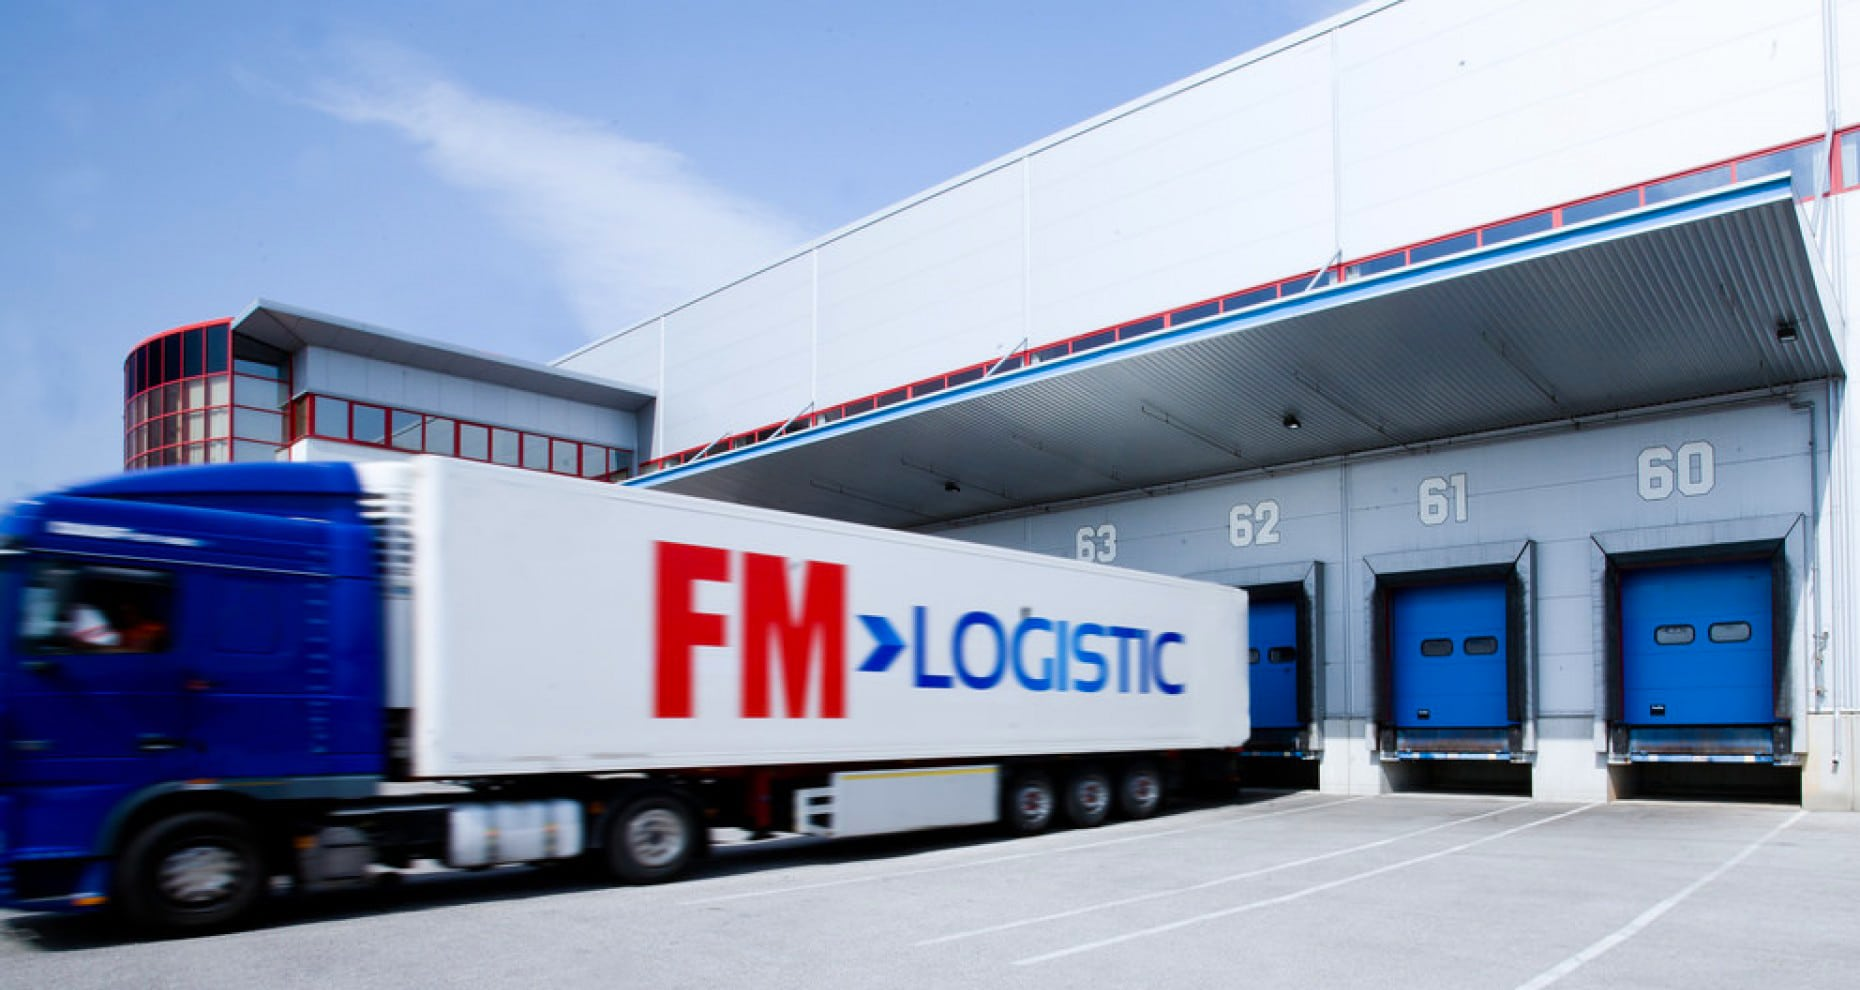 fmlogistic-depozitare-logistica-transport